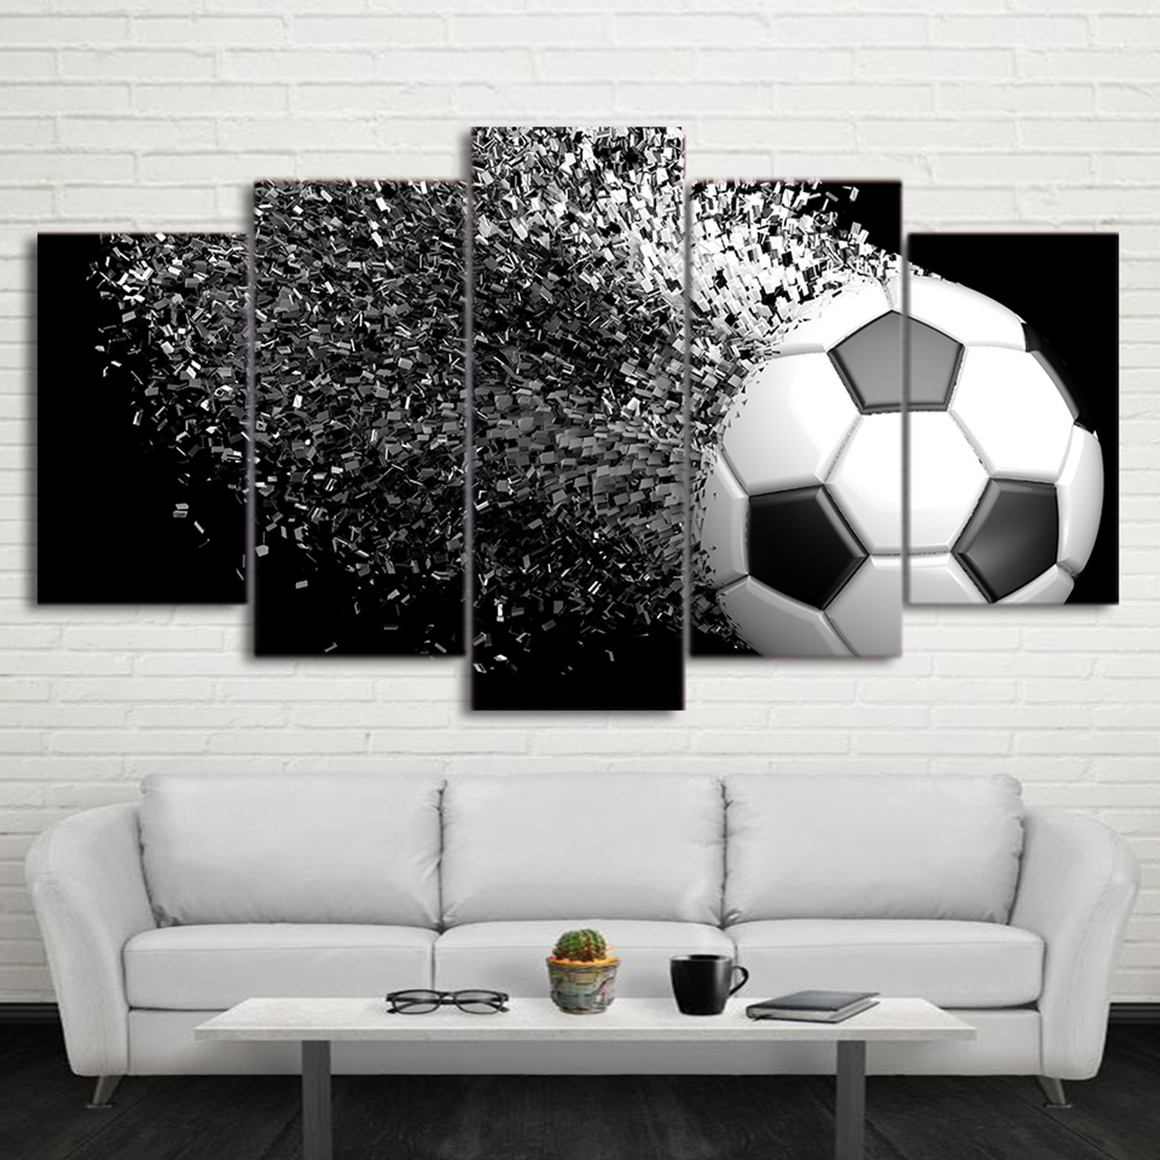 Football Limited Edition Wall Painting